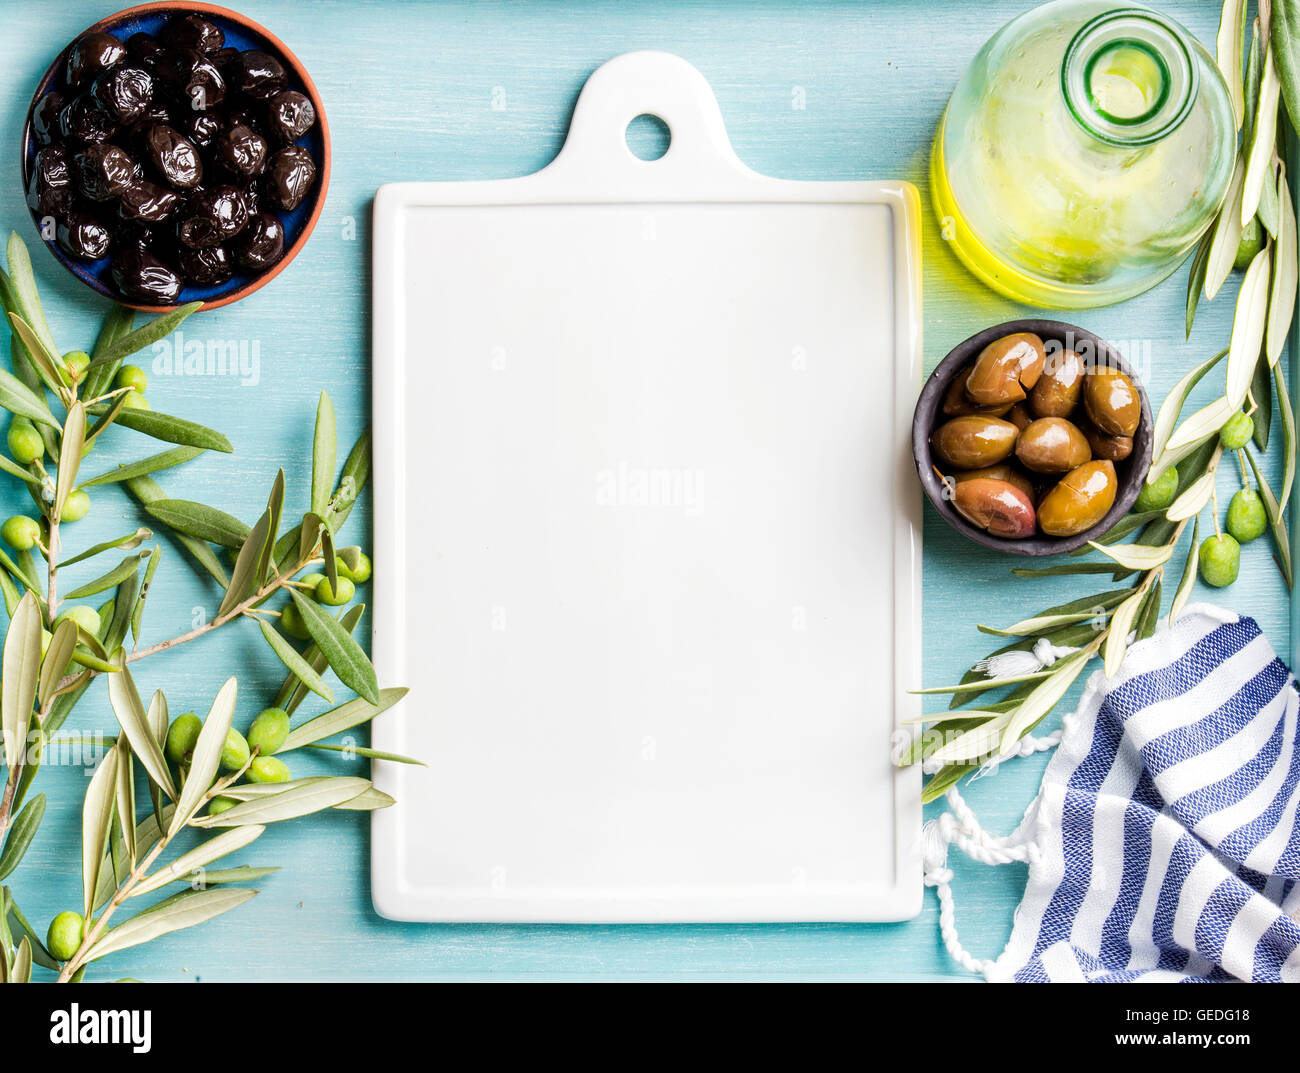 Two bowls with pickled green and black olives, olive tree sprigs, oil in glass bottle, white ceramic board in center - Stock Image